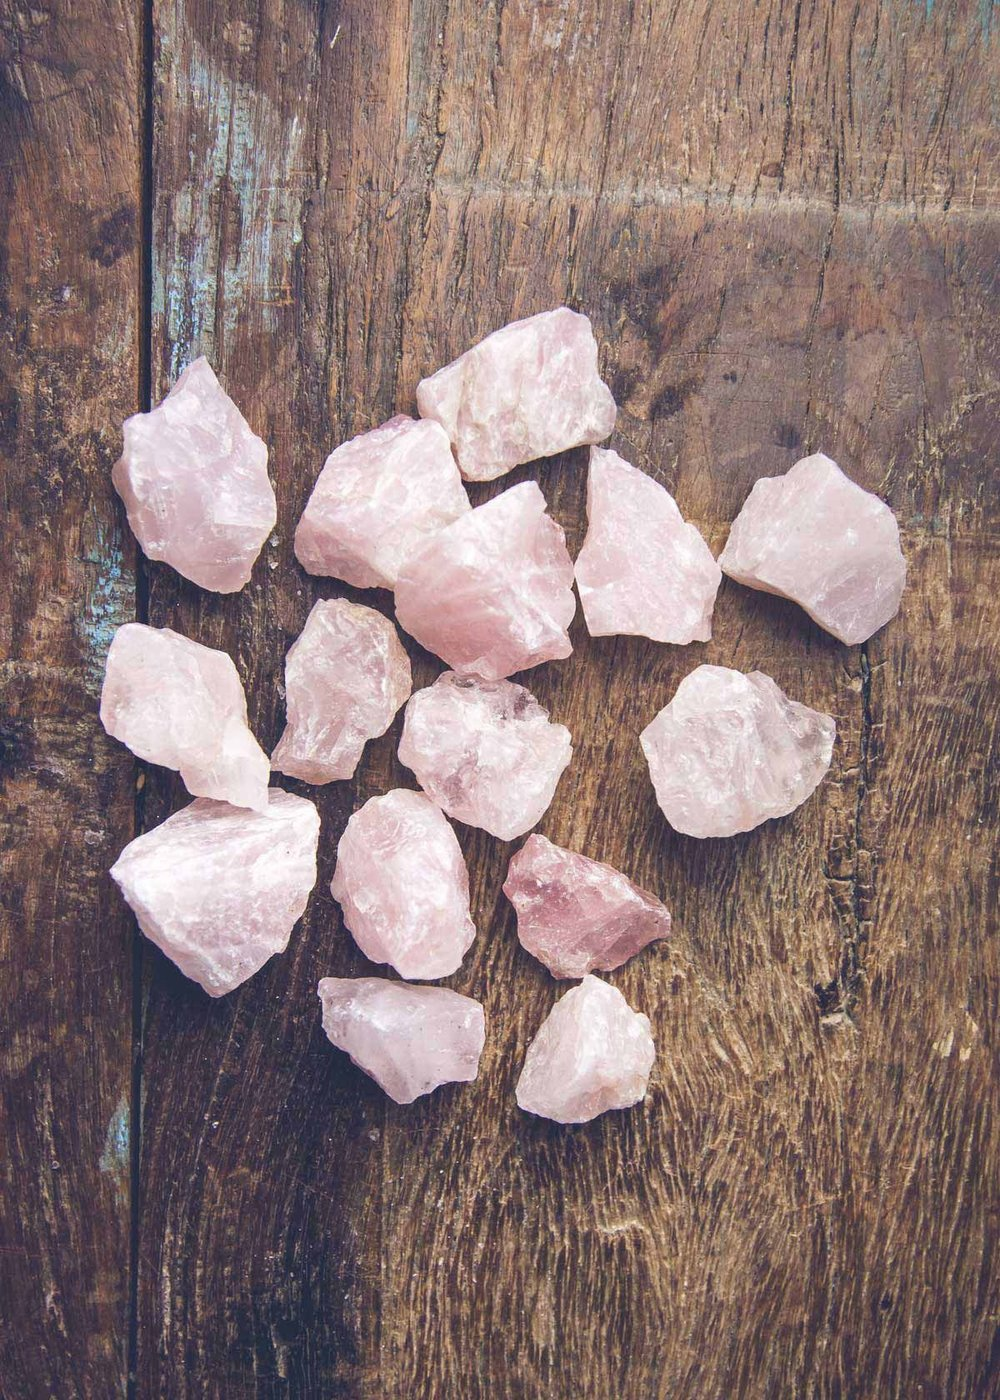 A pile of Rose Quartz.